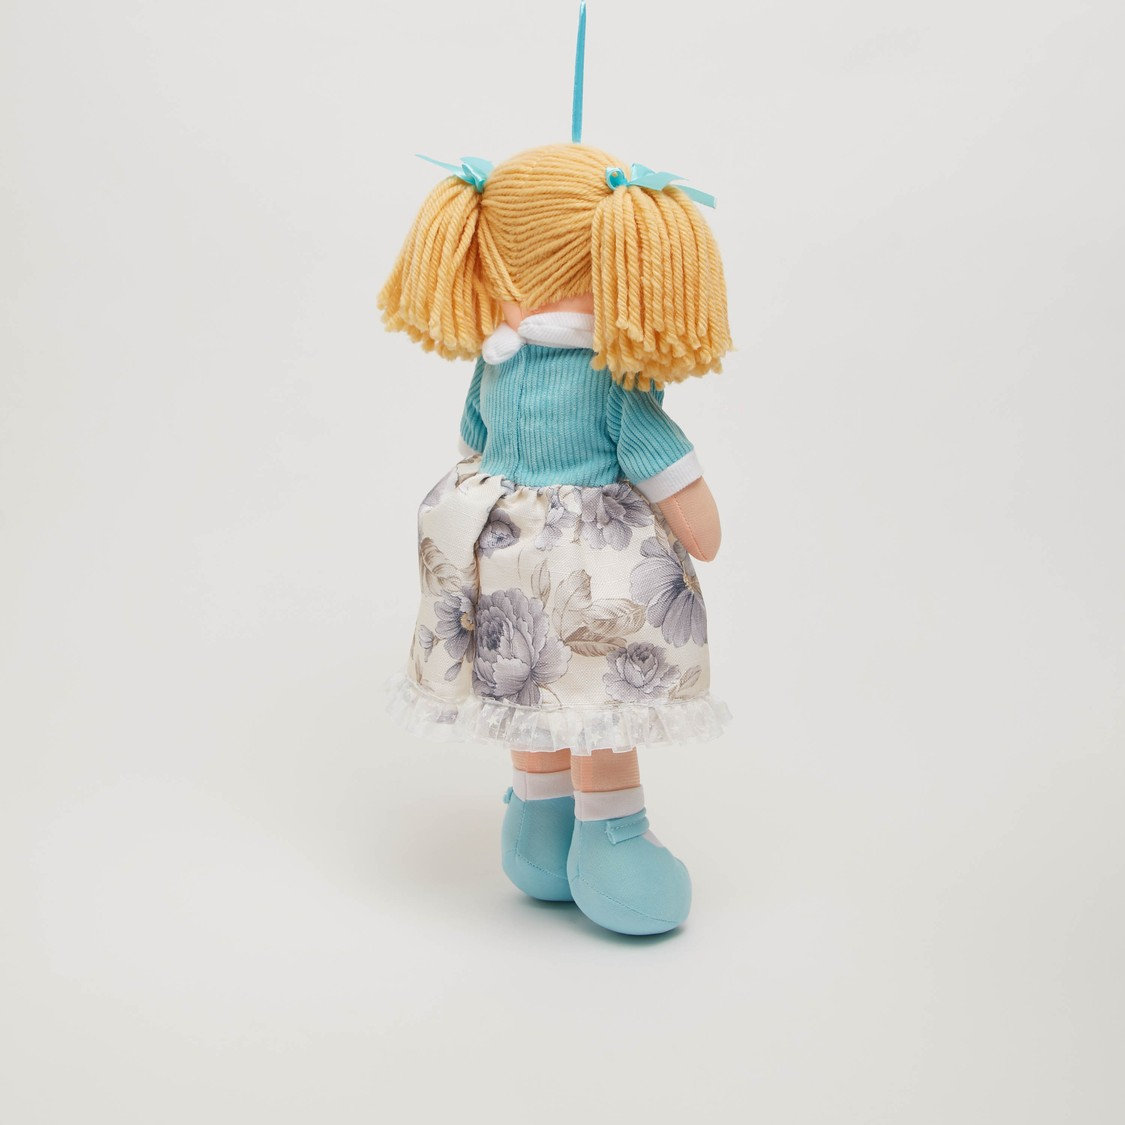 Doll Soft Toy in Floral Print Dress and Ponytails